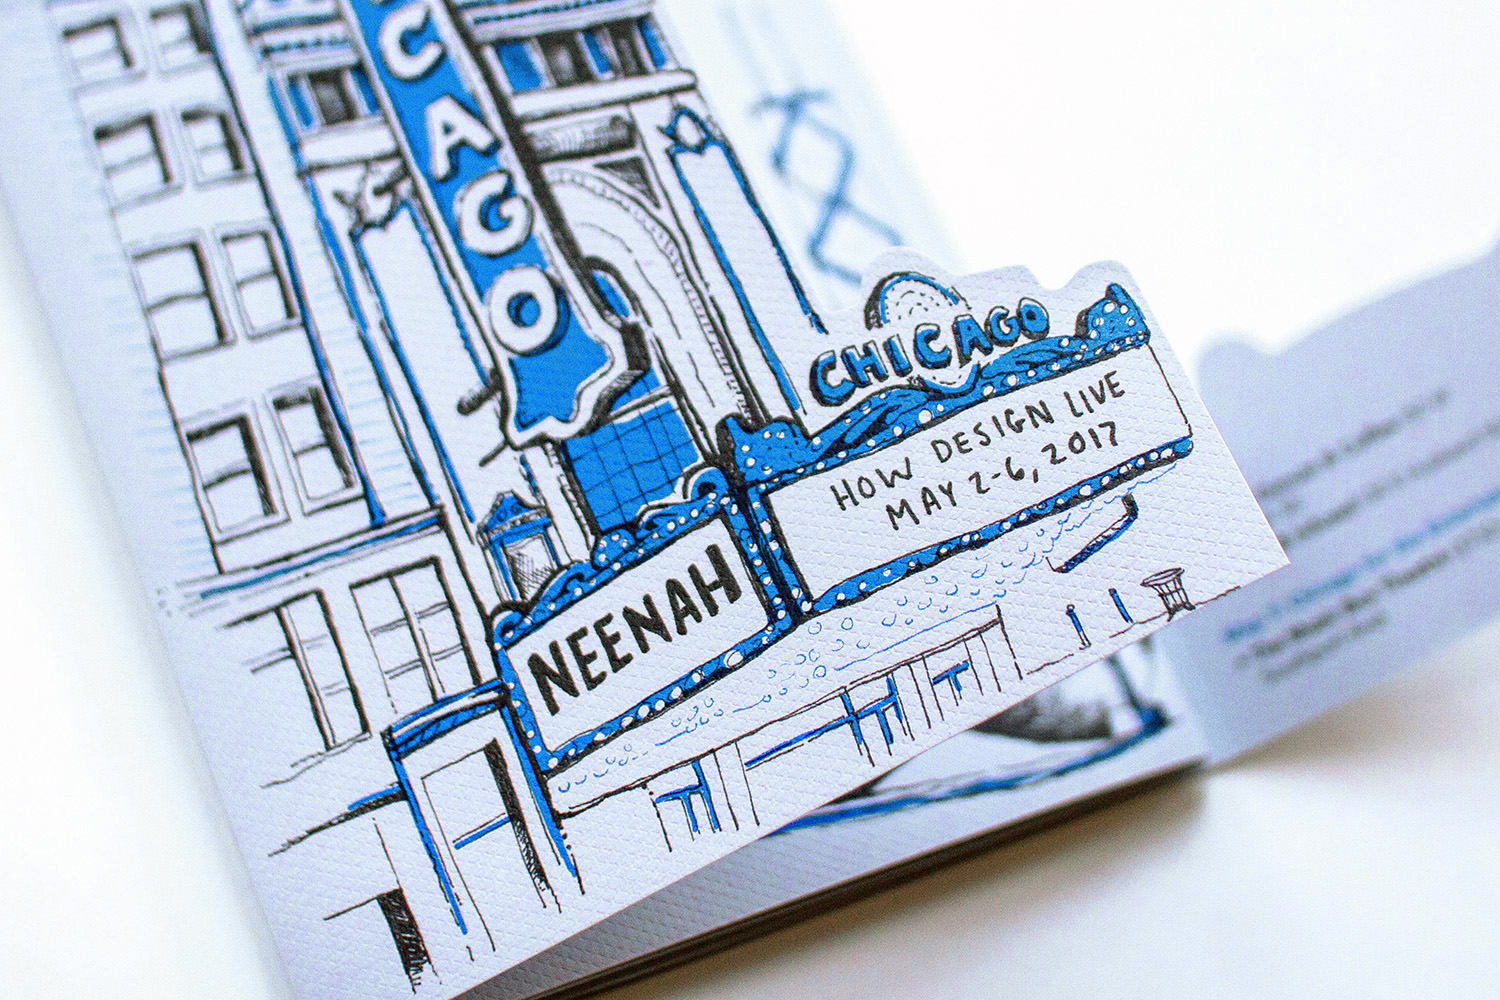 The front flap of the diecut cover opens up around the edges of the Chicago theater marquee to reveal the skyline and maps underneath.